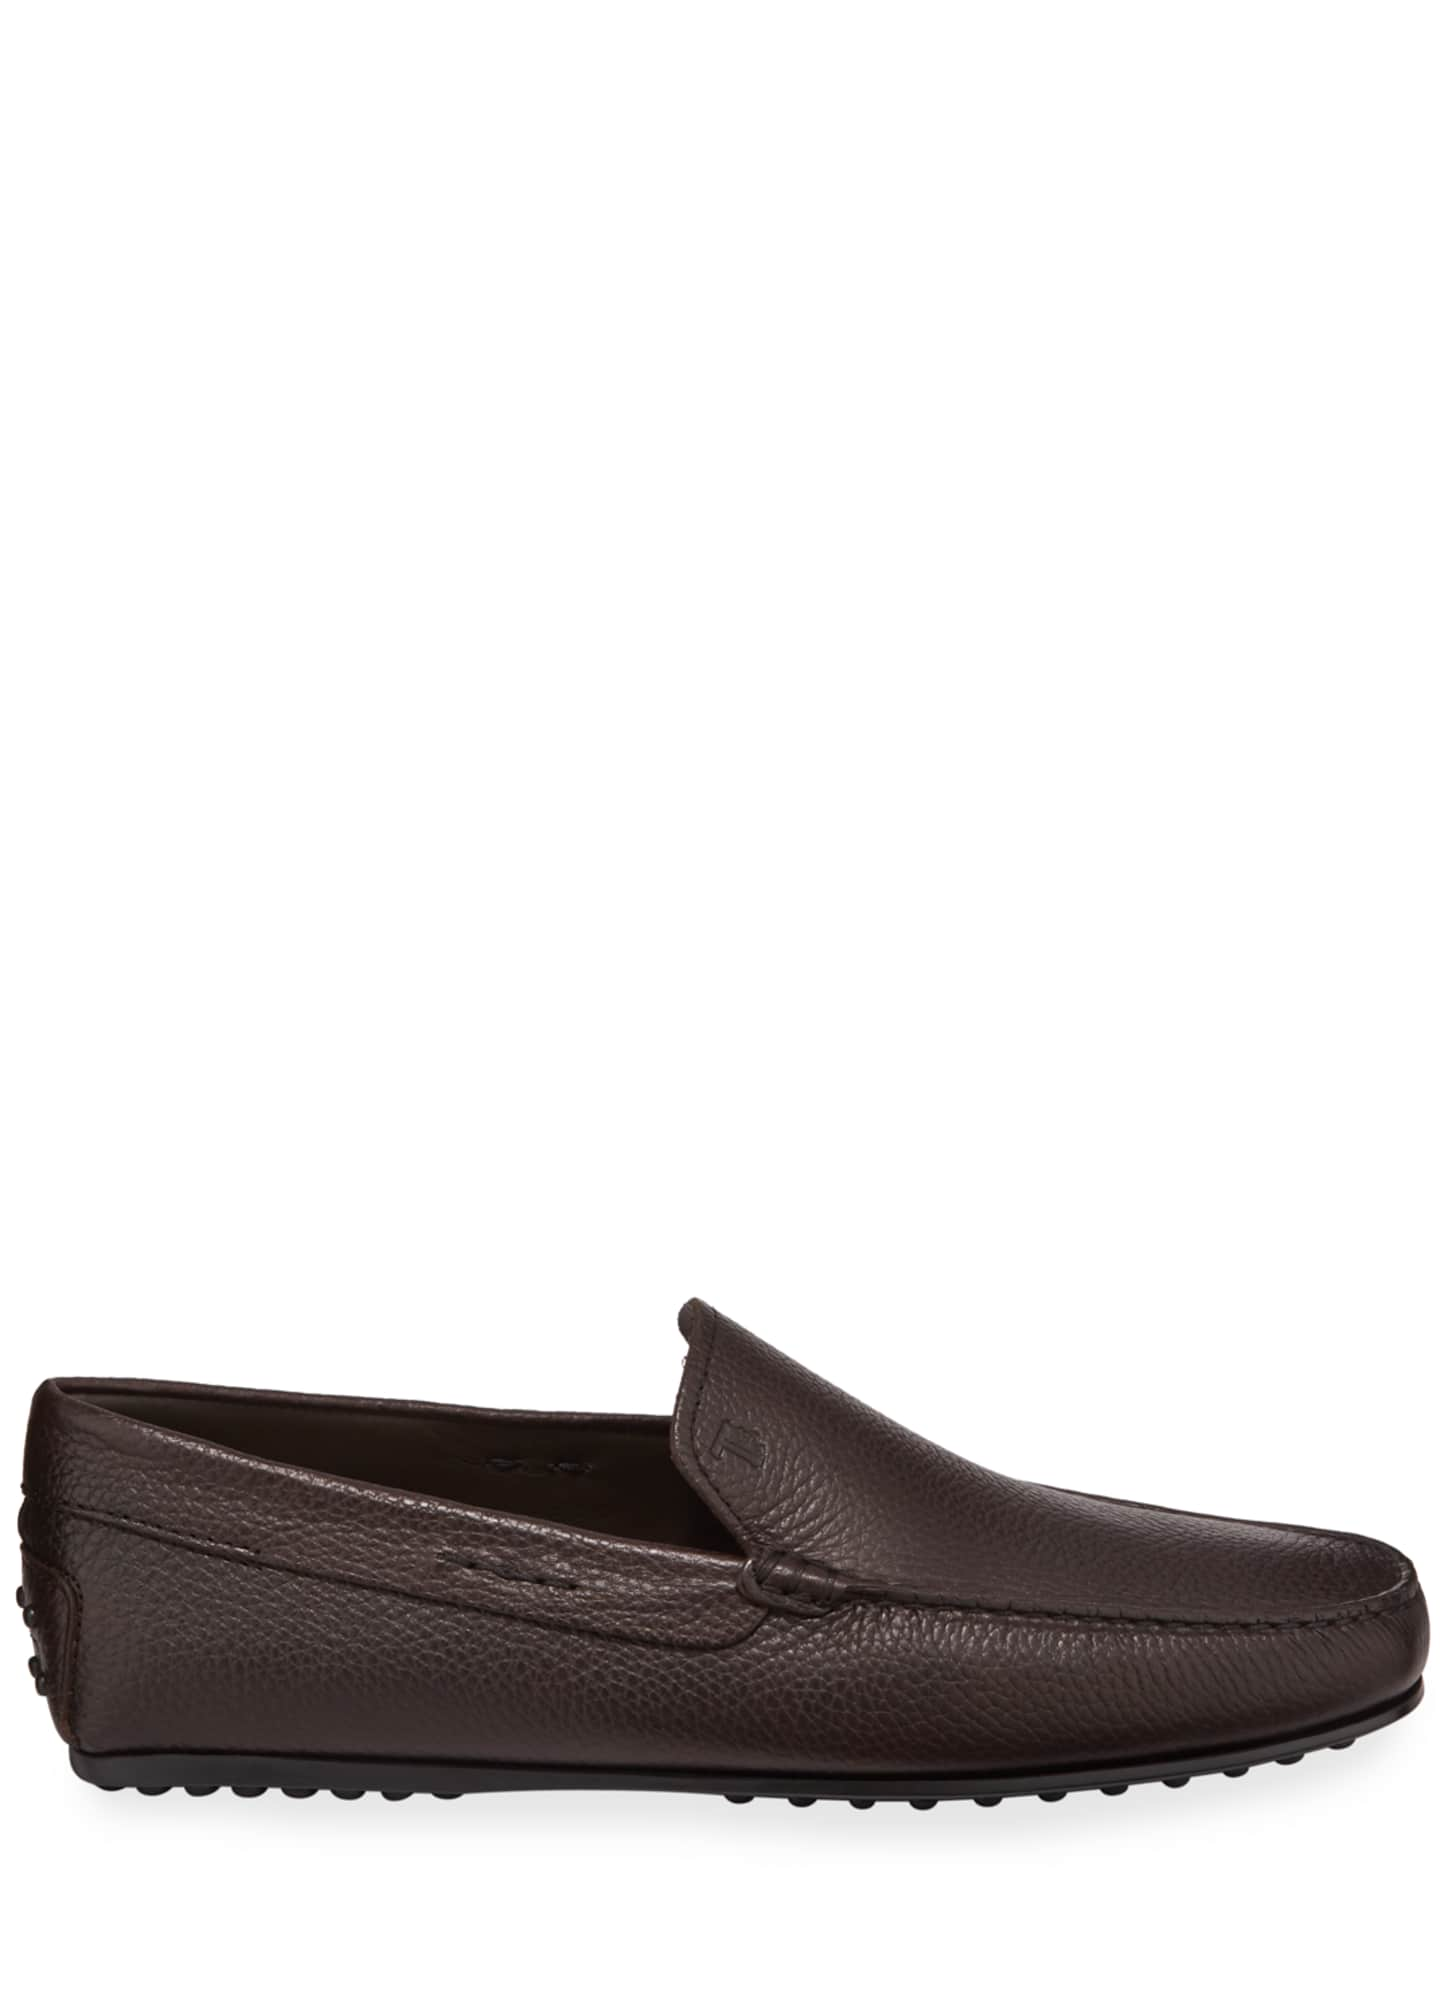 Image 3 of 3: Men's City Leather Moc-Toe Driver Shoes